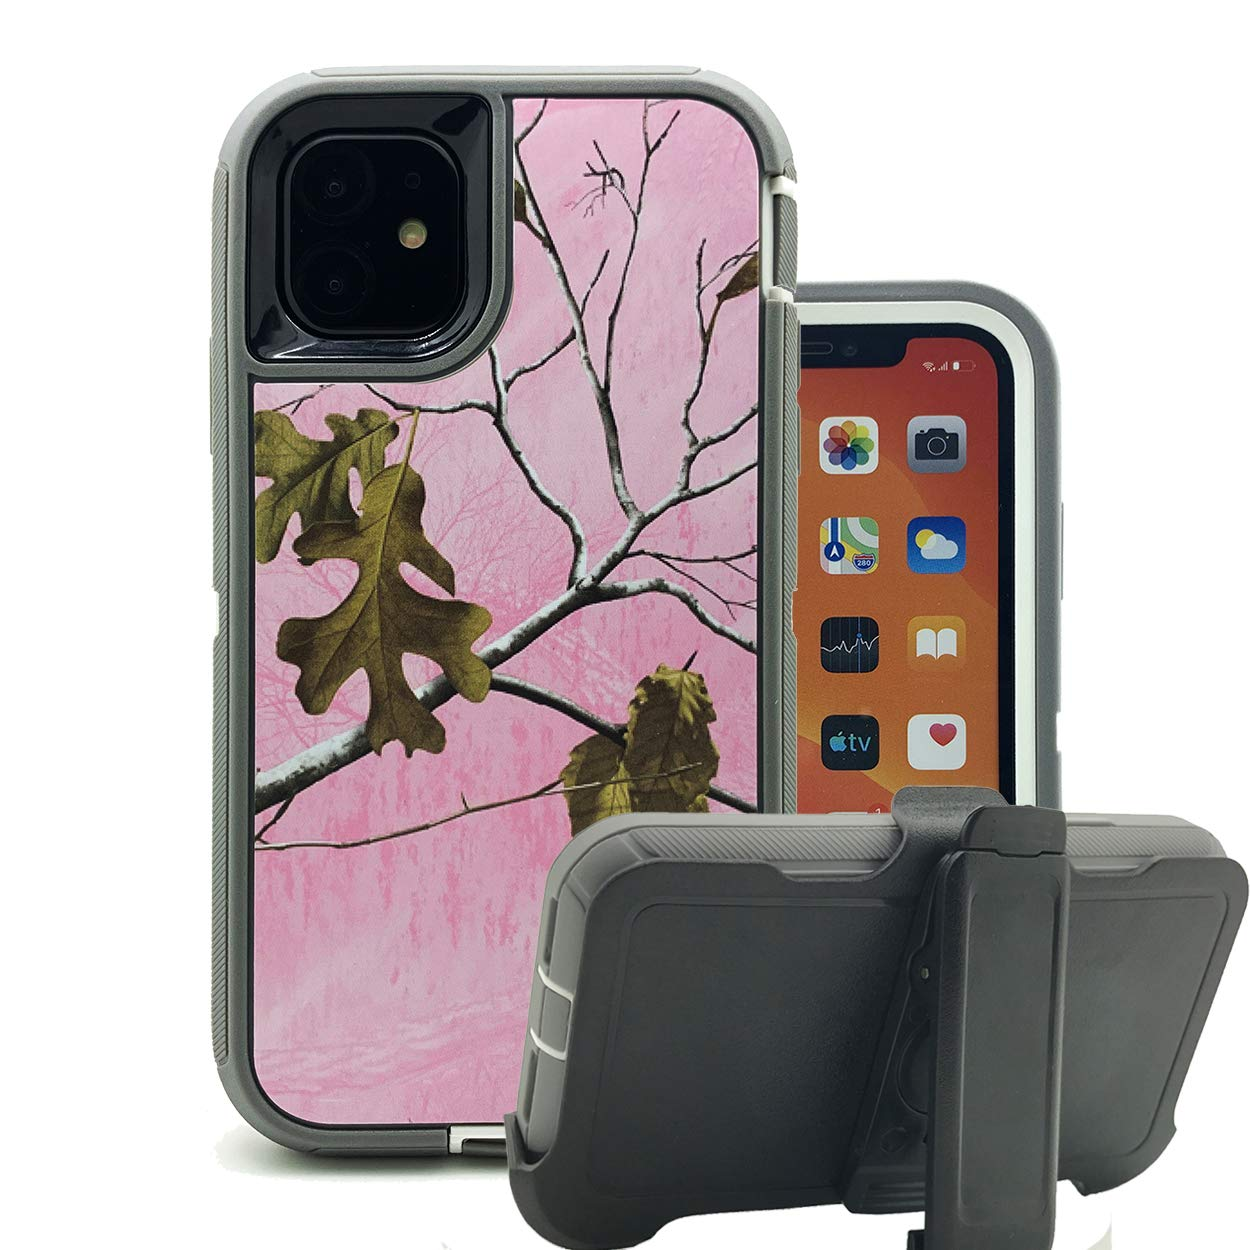 Harsel Heavy Duty Scratch Resistant Defender Camouflage Design Hybrid Armor Military Grade Protection Shockproof Durable Case Cover Bumper with Belt Clip for iPhone 11 Pro (Xtra Pink)